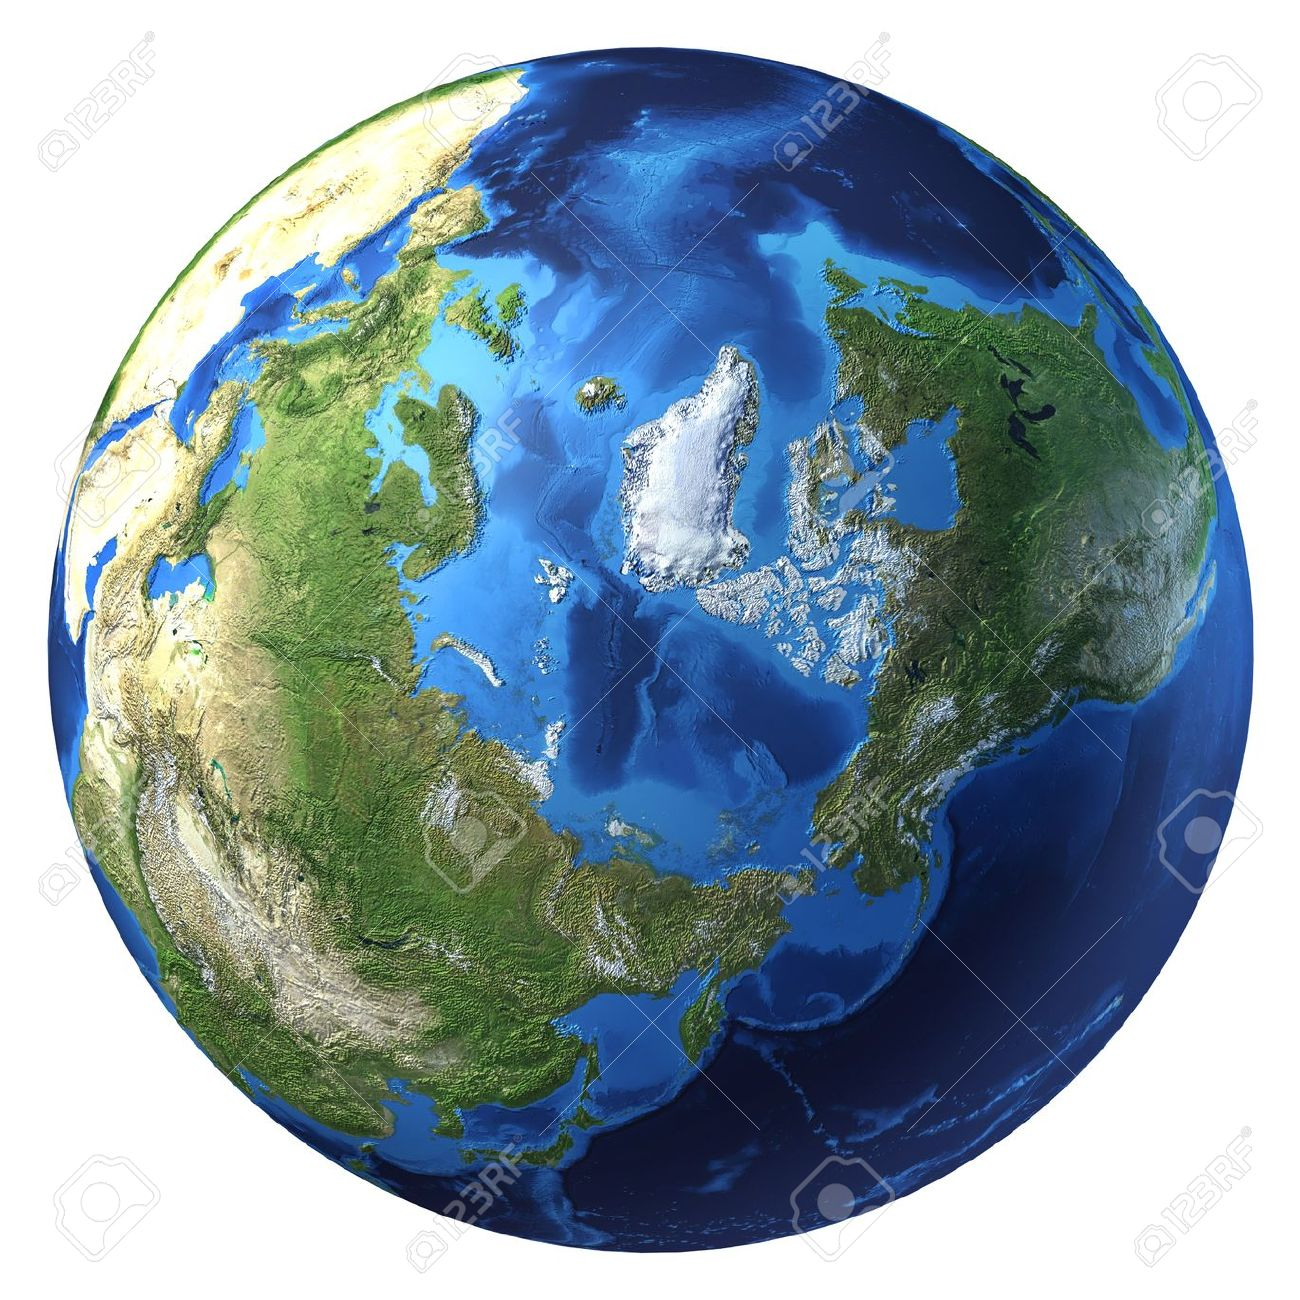 Earth globe realistic 3 d rendering arctic view north pole earth globe realistic 3 d rendering arctic view north pole on gumiabroncs Choice Image